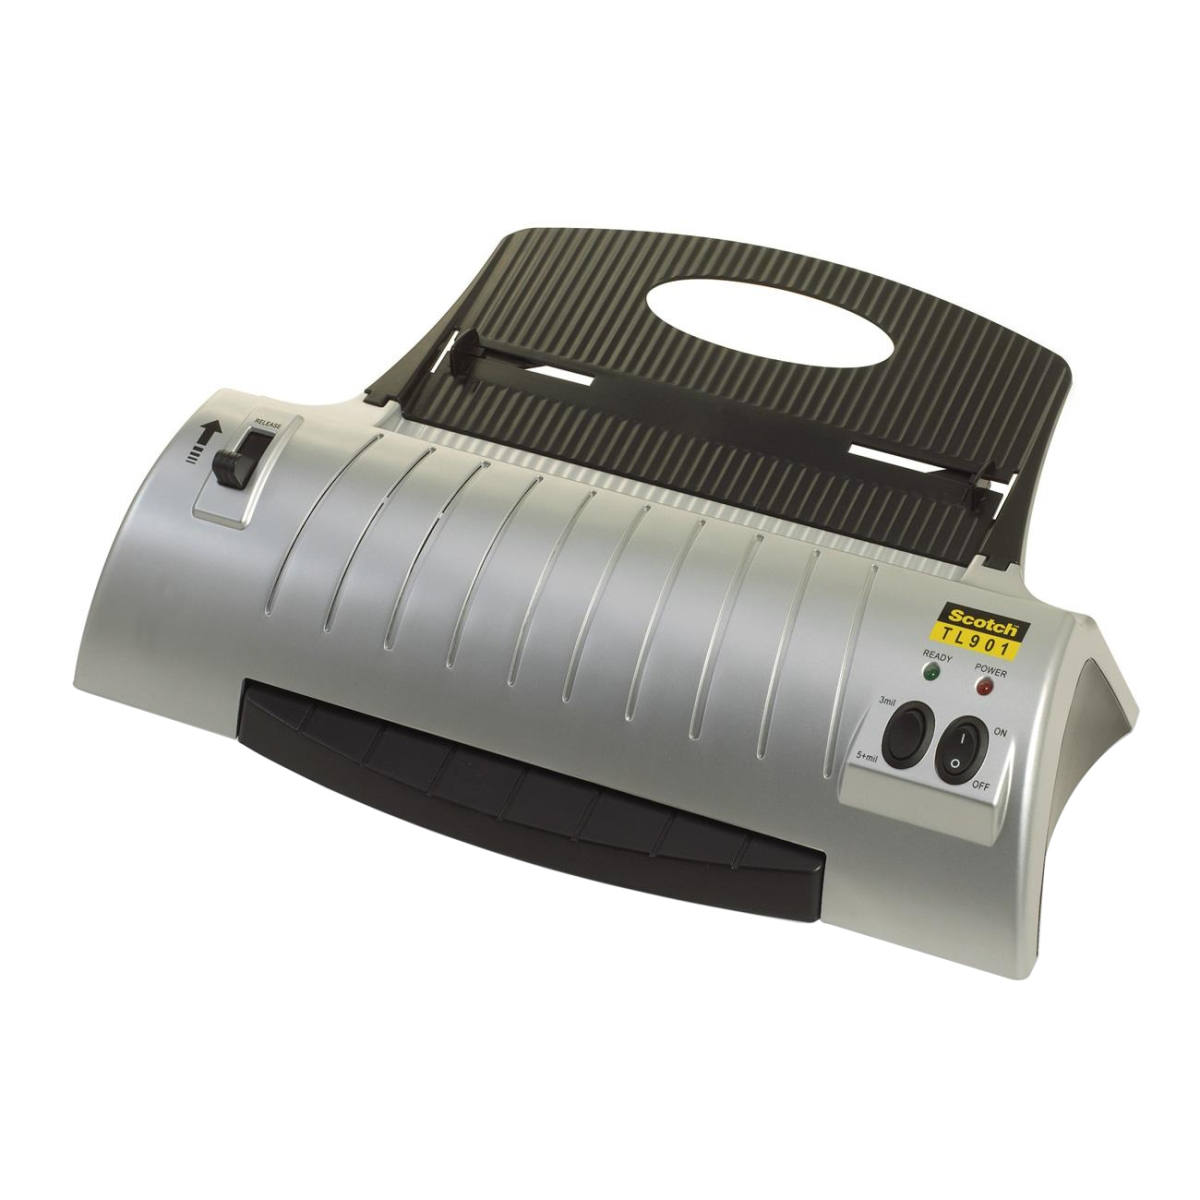 THIS IS A THERMAL LAMINATOR THAT WILL LAMINATE ITEMS UP TO 9 IN WIDE. IT IS A 2